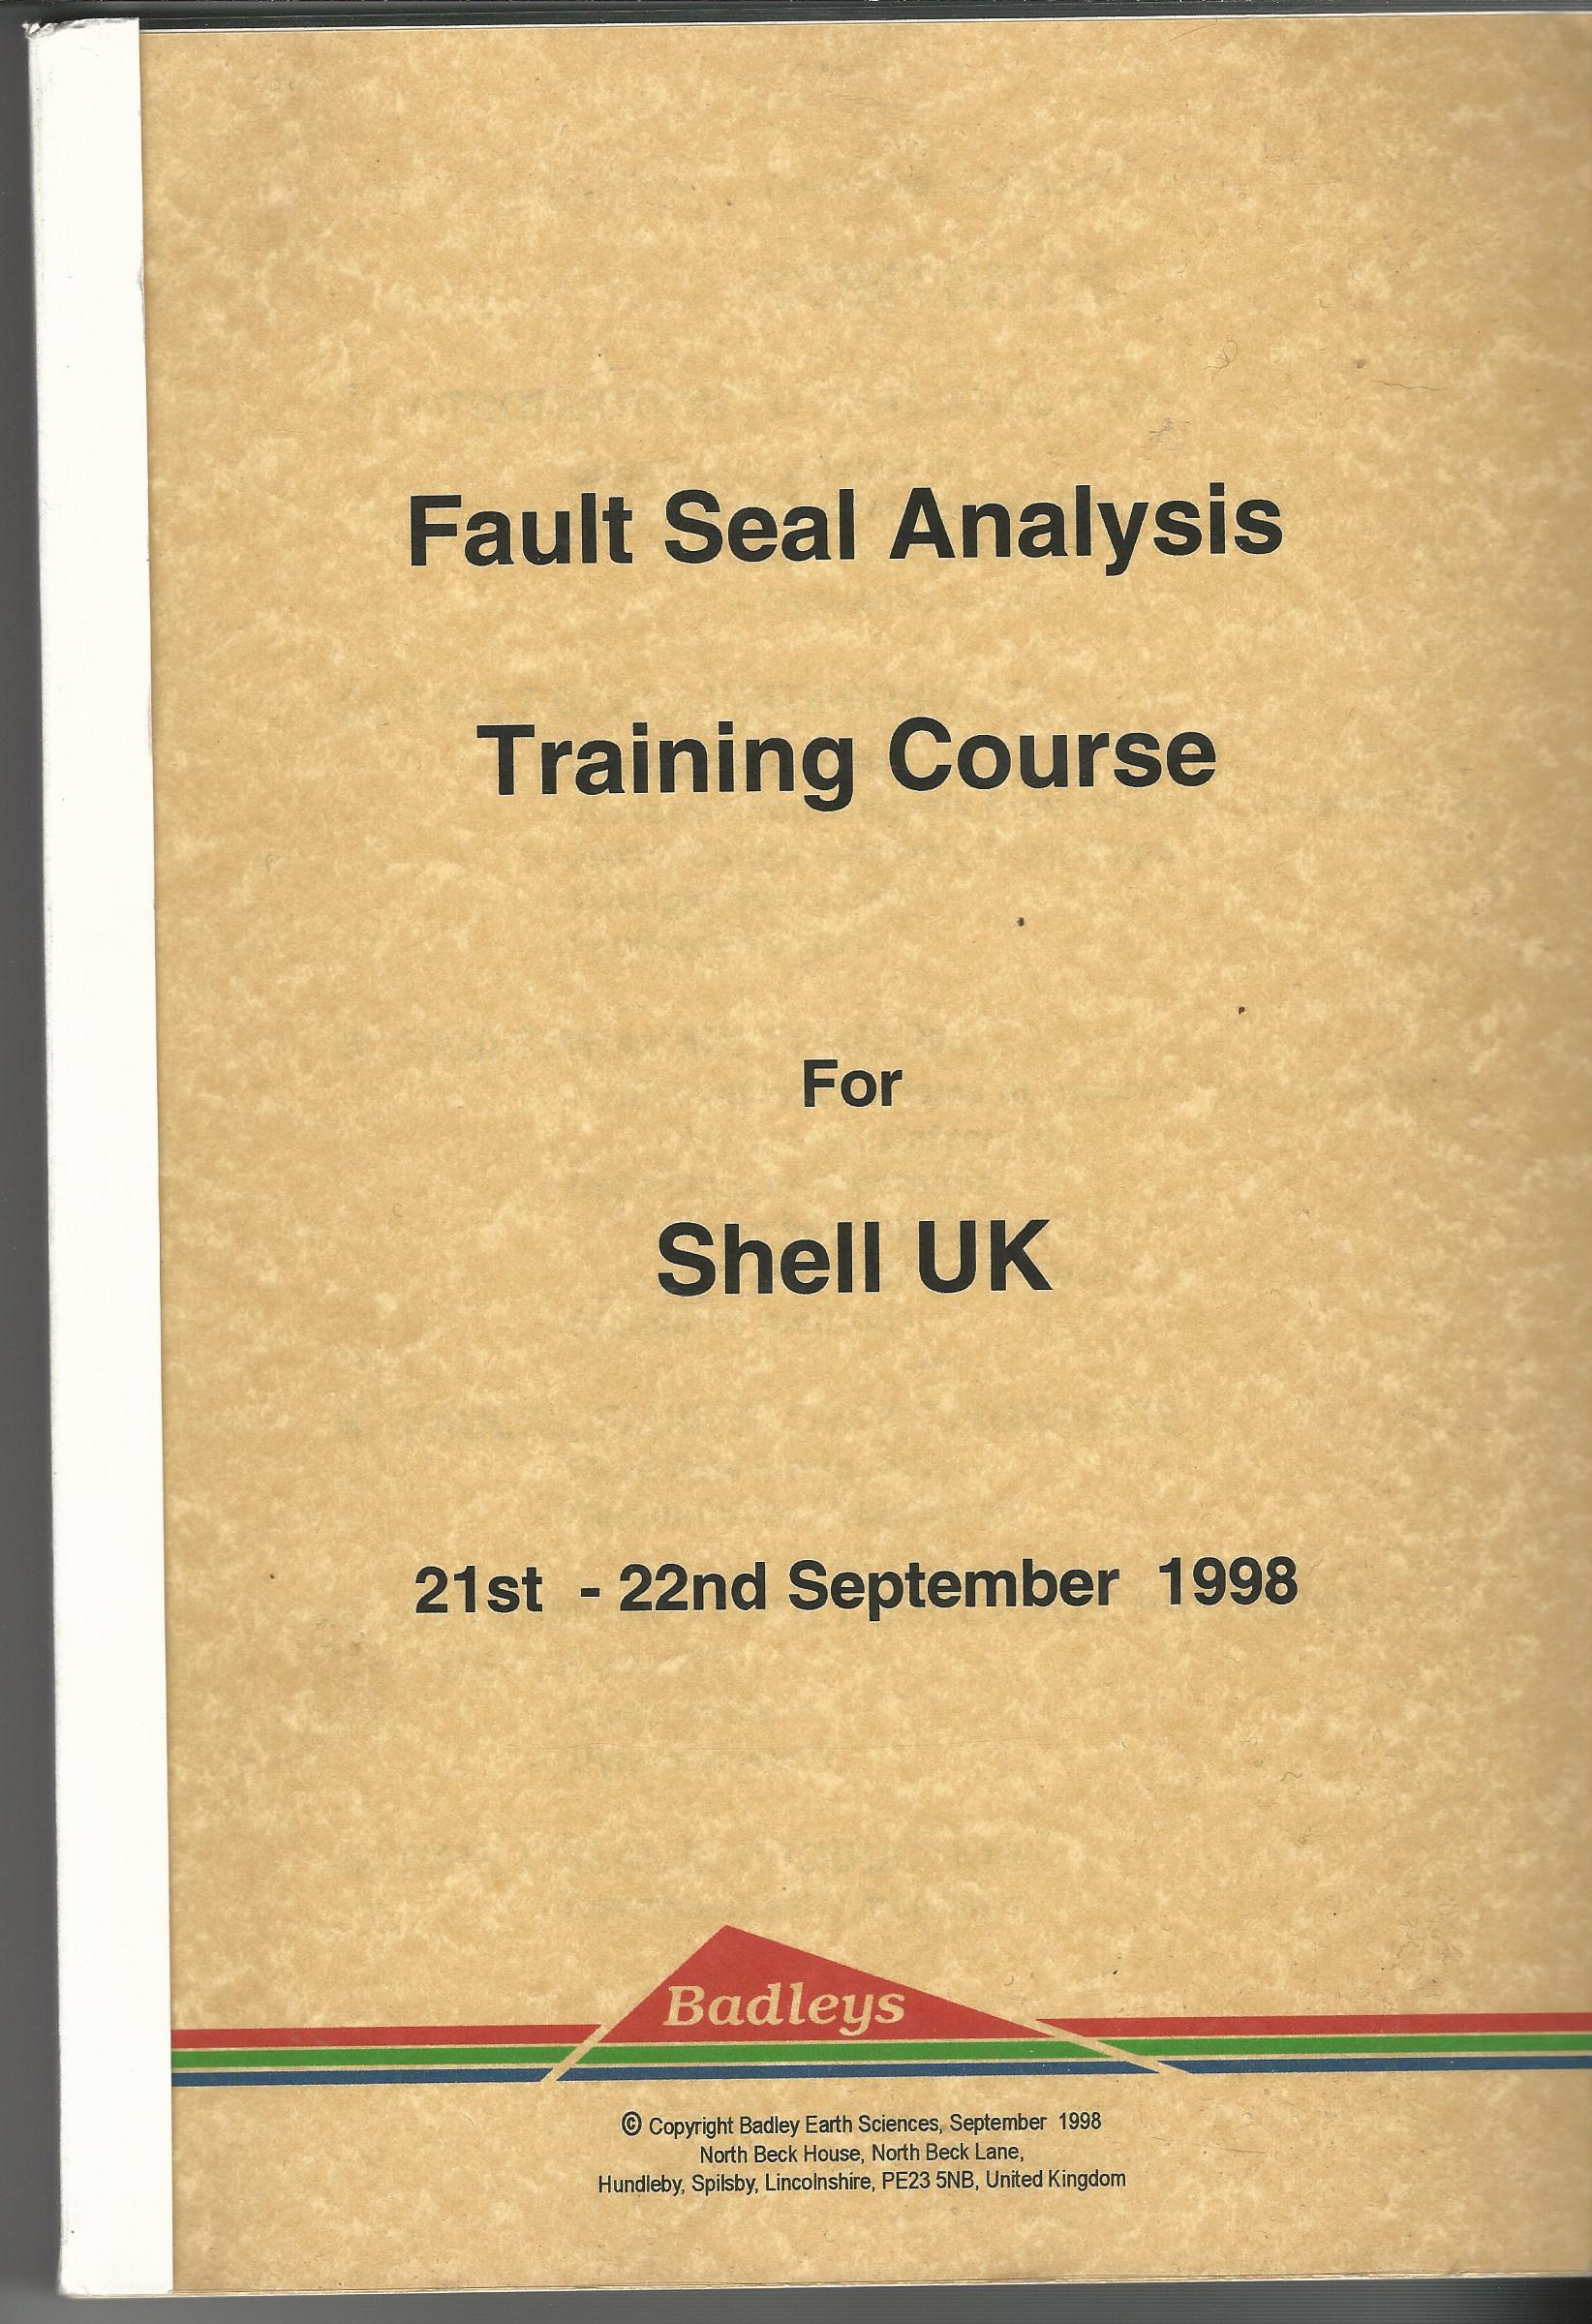 Image for Fault Seal Analysis Training Course for Shell UK 21st - 22nd September 1998.